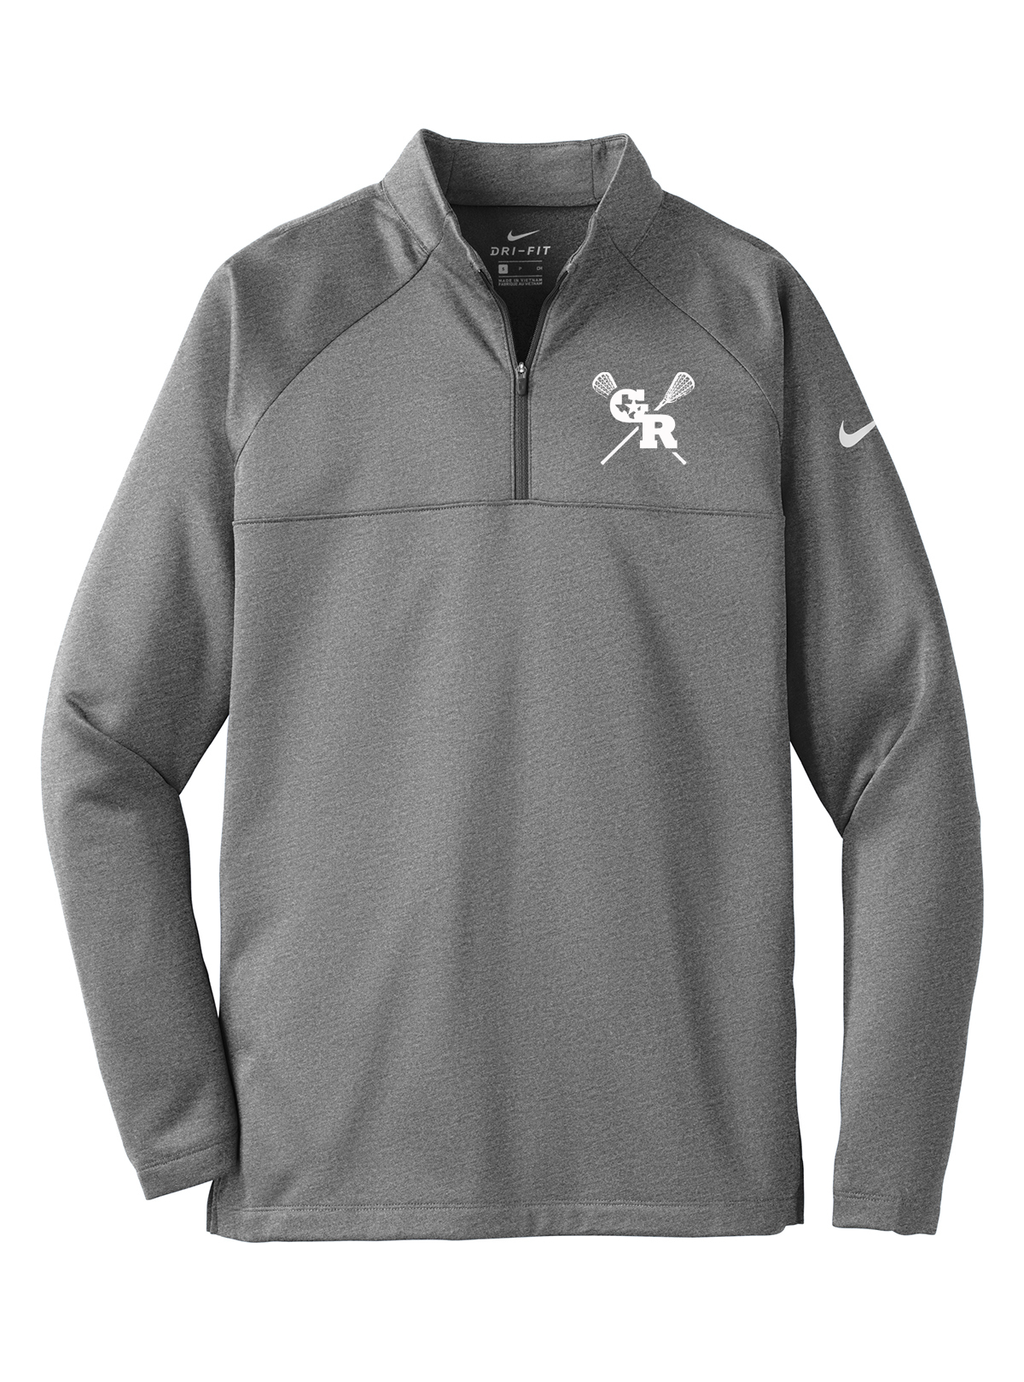 GR Longhorns Lacrosse Nike Therma-FIT Fleece